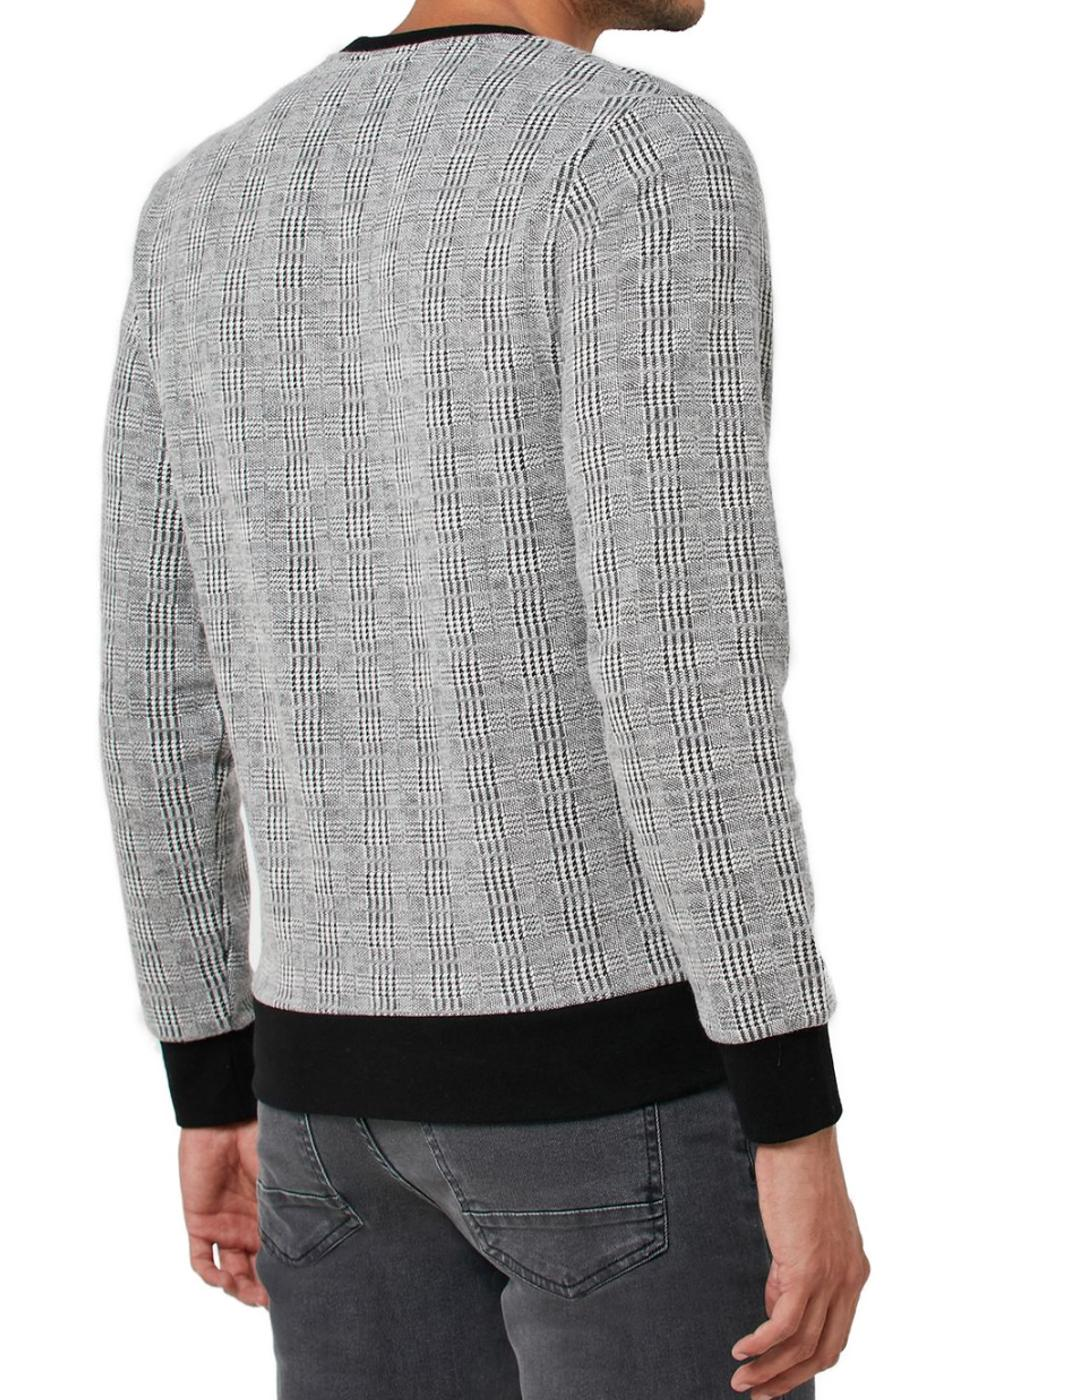 JPRCHRIS CHECK SWEAT CREW NECK GREY-W